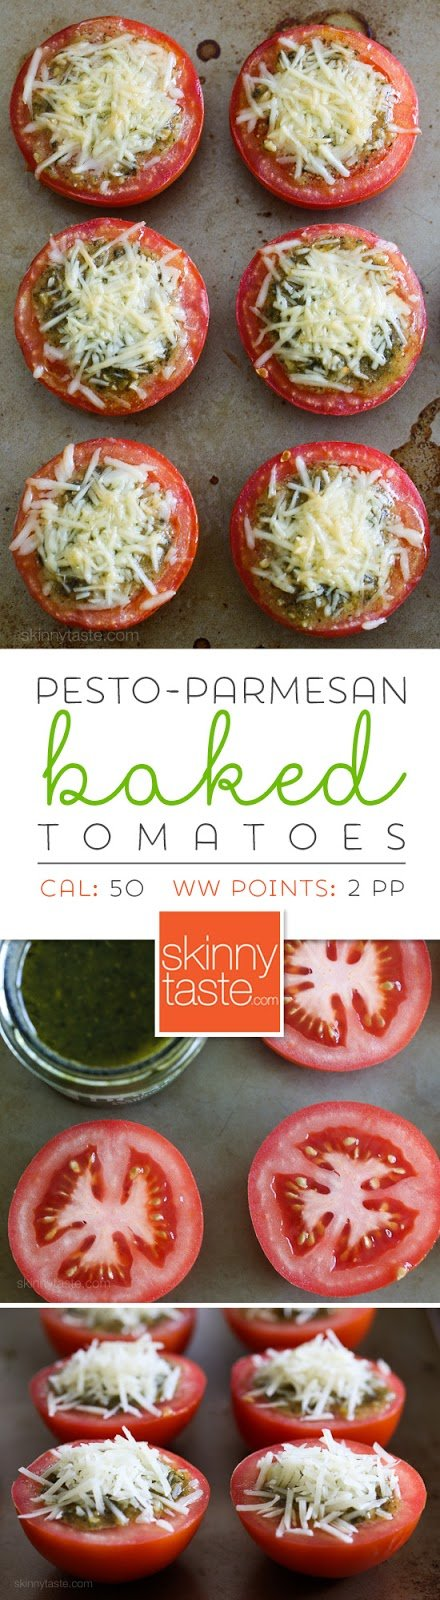 Pesto-Parmesan Baked Tomatoes - EASY, only 3 ingredients!